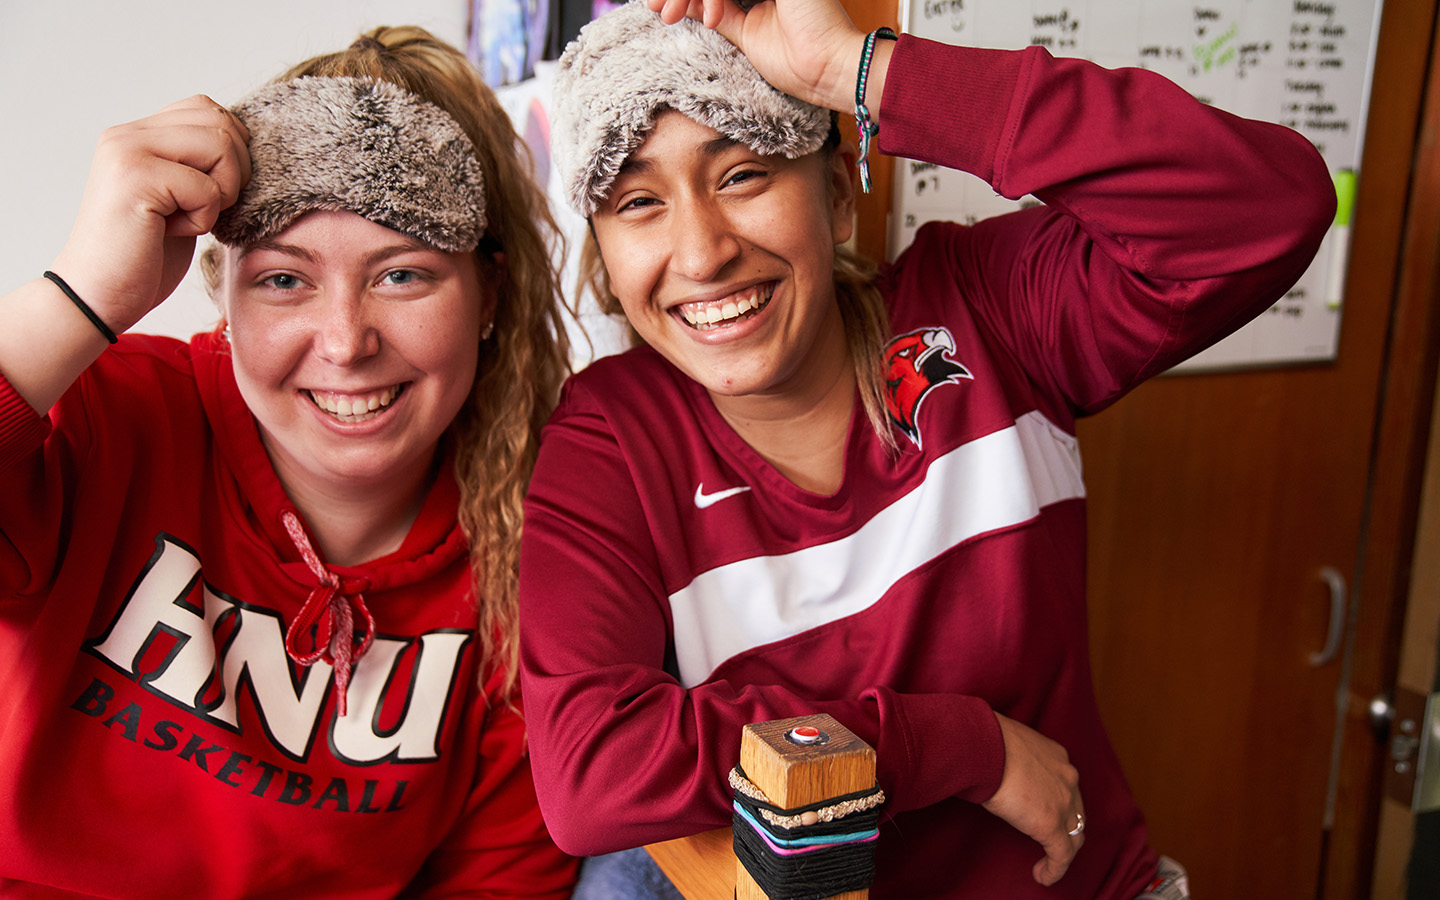 Two Holy Name University students in dorm room with sleep masks on